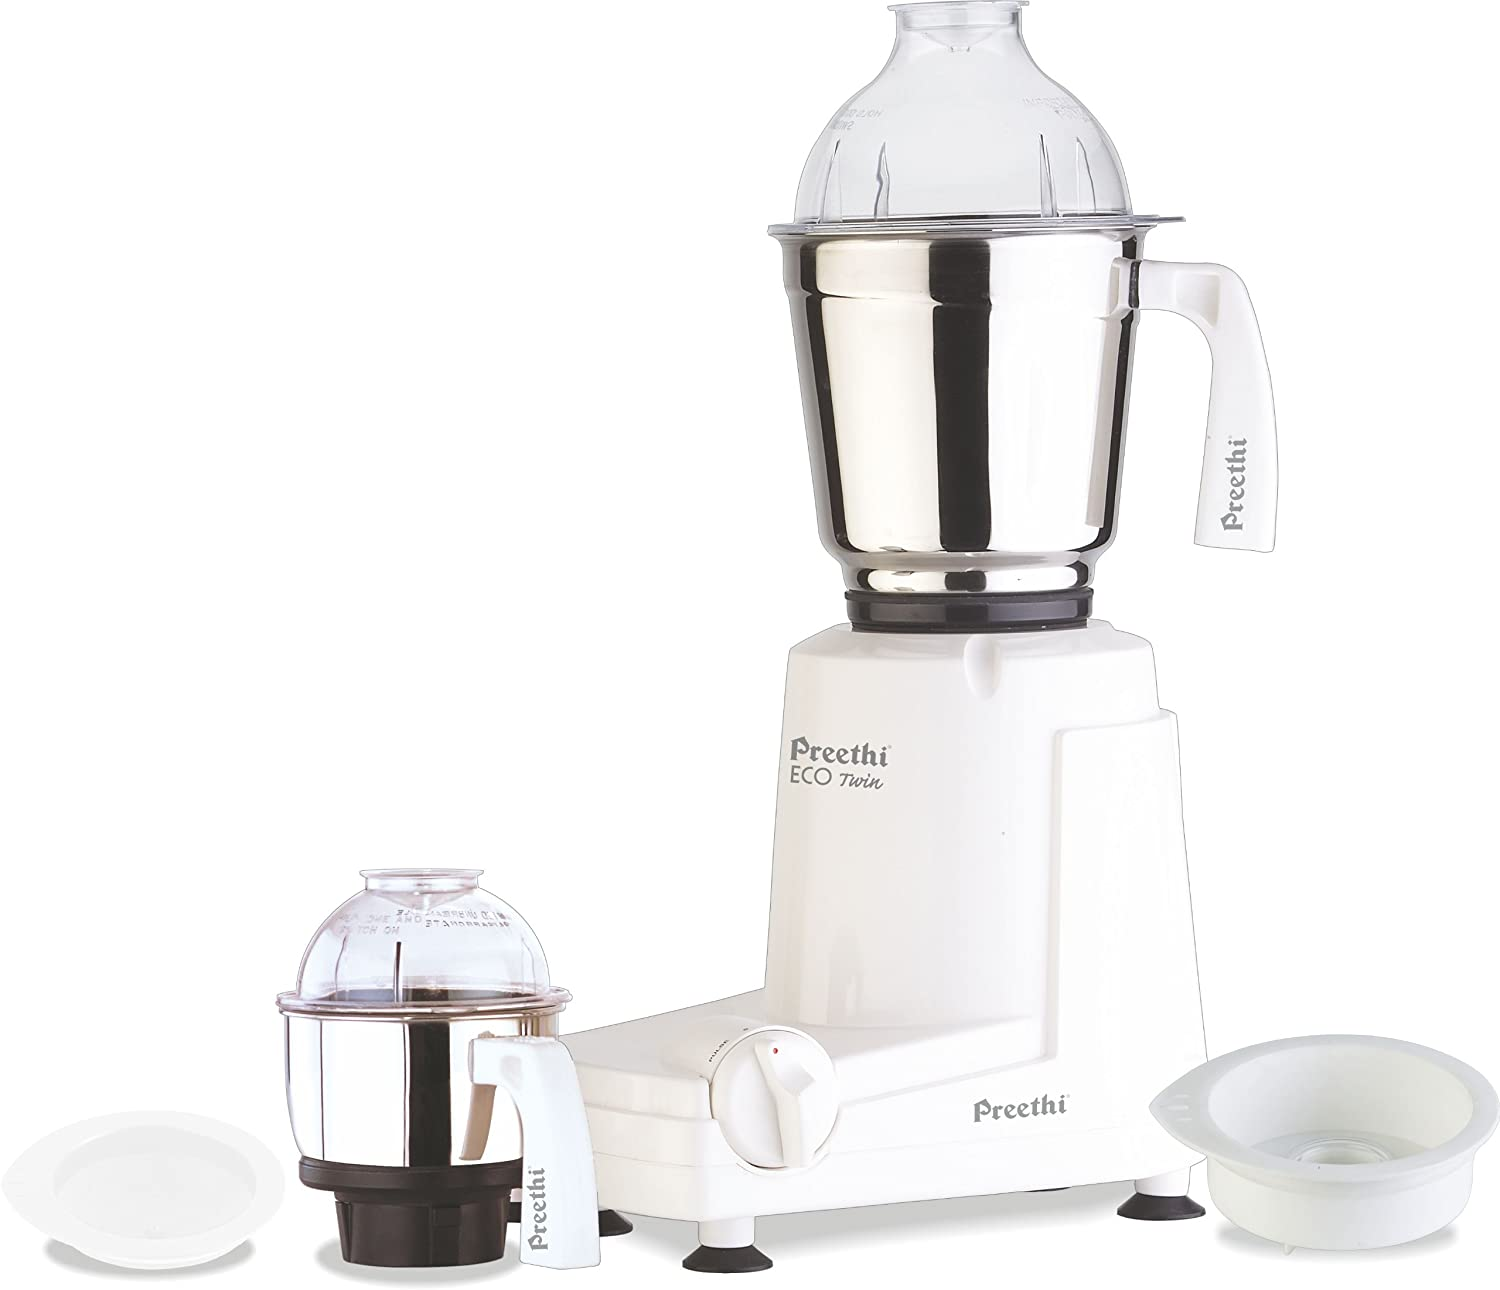 Review of Preethi Eco Twin Jar Mixer Grinder, 550-Watt